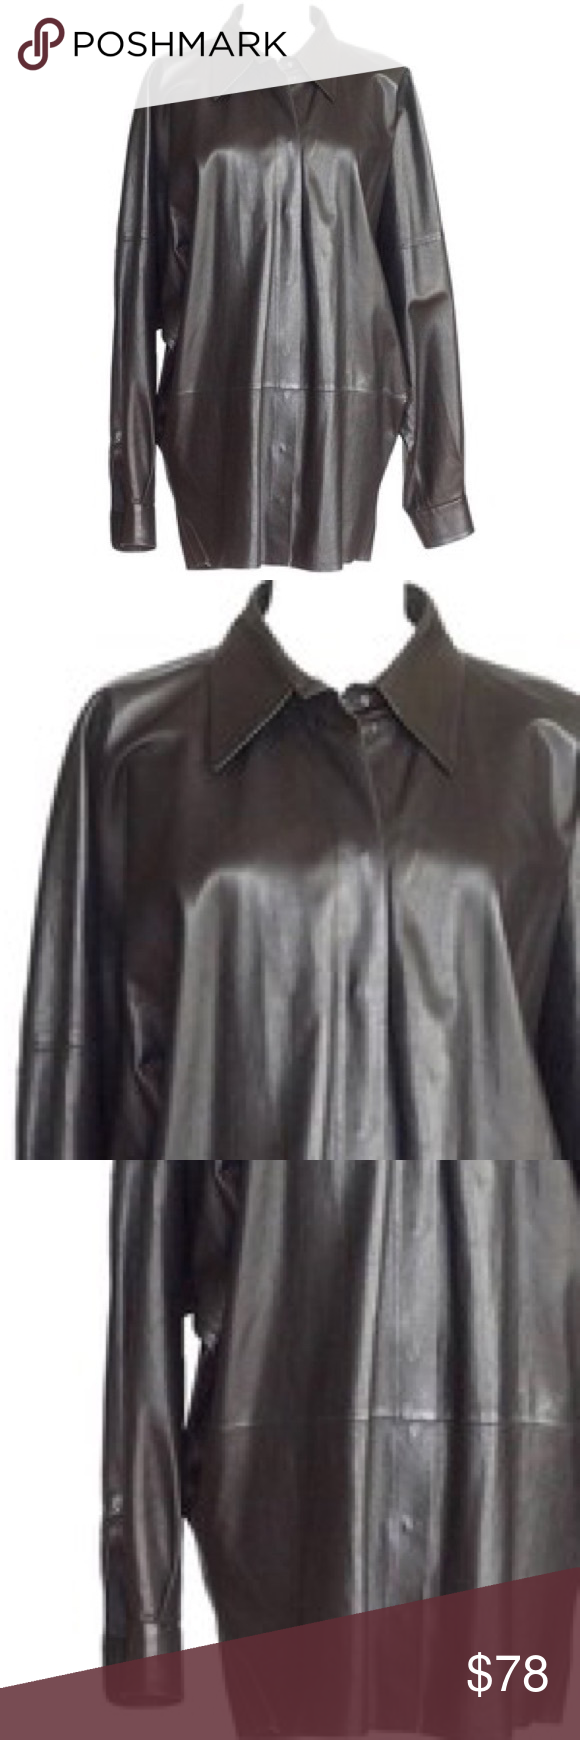 Vintage Oversized Leather Button Down Long sleeve leather collared vintage button down. Top is between L/XL please note this is an oversized look made with faux leather fabric. #vegan #vintage #black #onyx vintage Tops Button Down Shirts